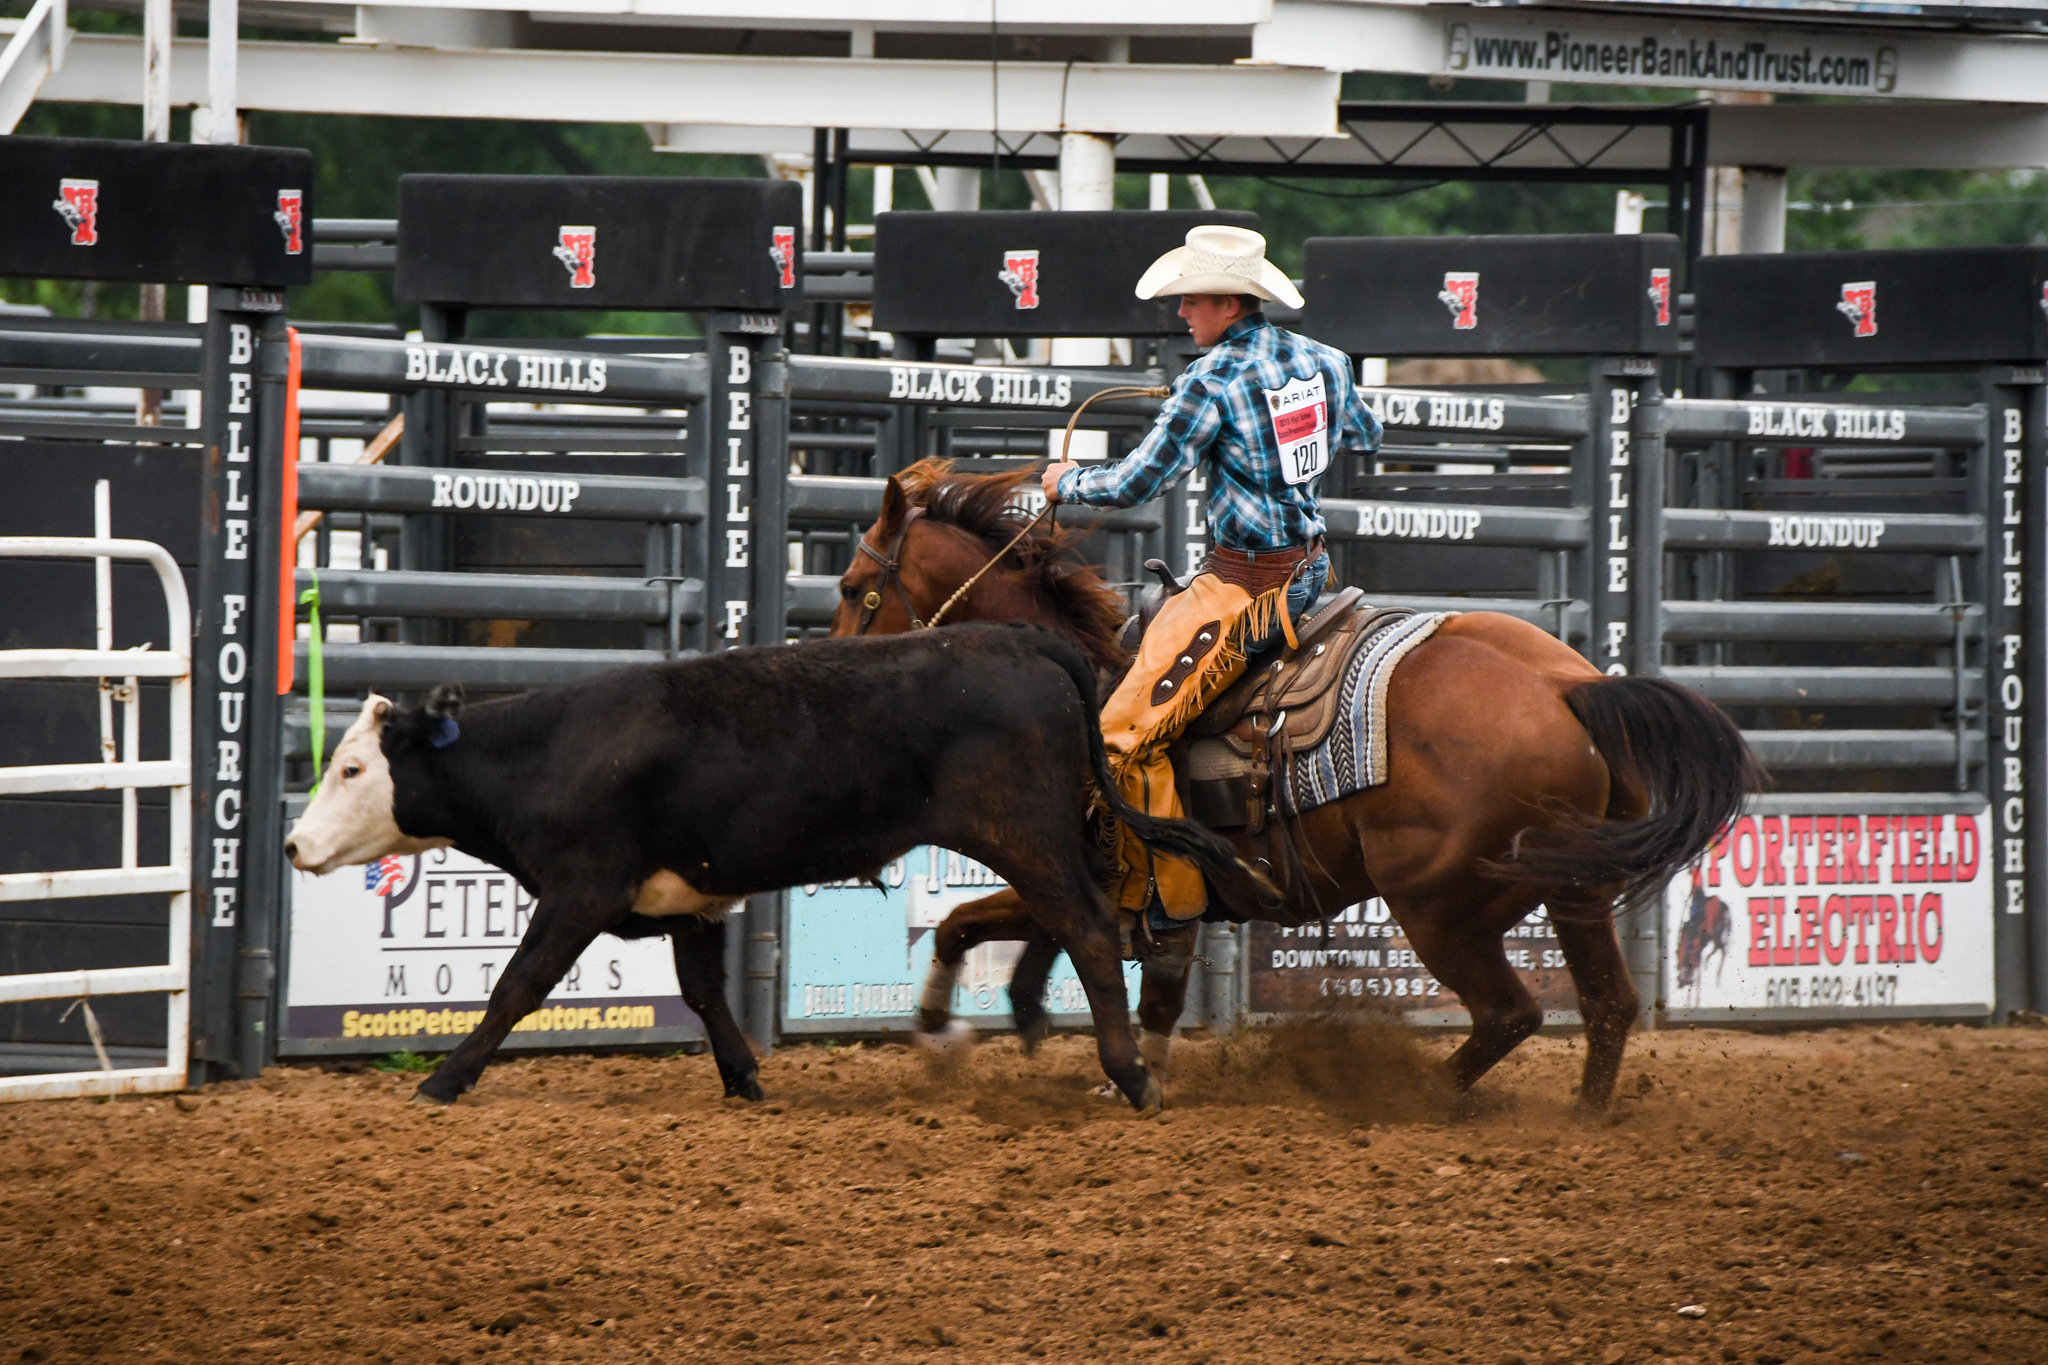 2018 Rodeo Pictures